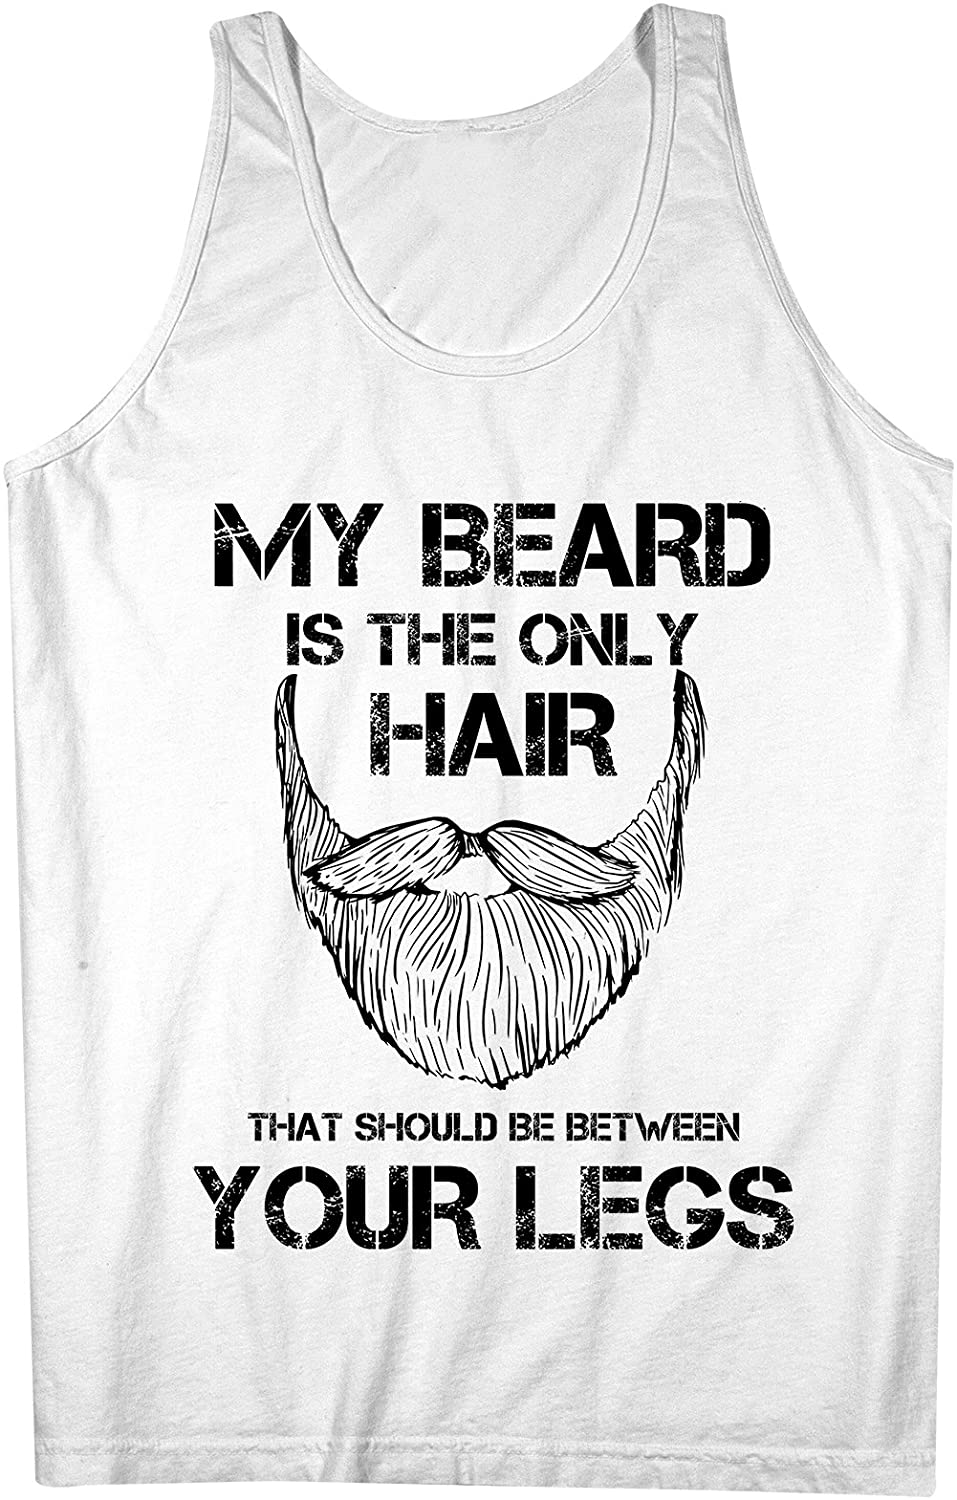 My Beard Is The Only Hair That Should Be Between Your Legs おかしいです 男性用 Tank Top Sleeveless Shirt